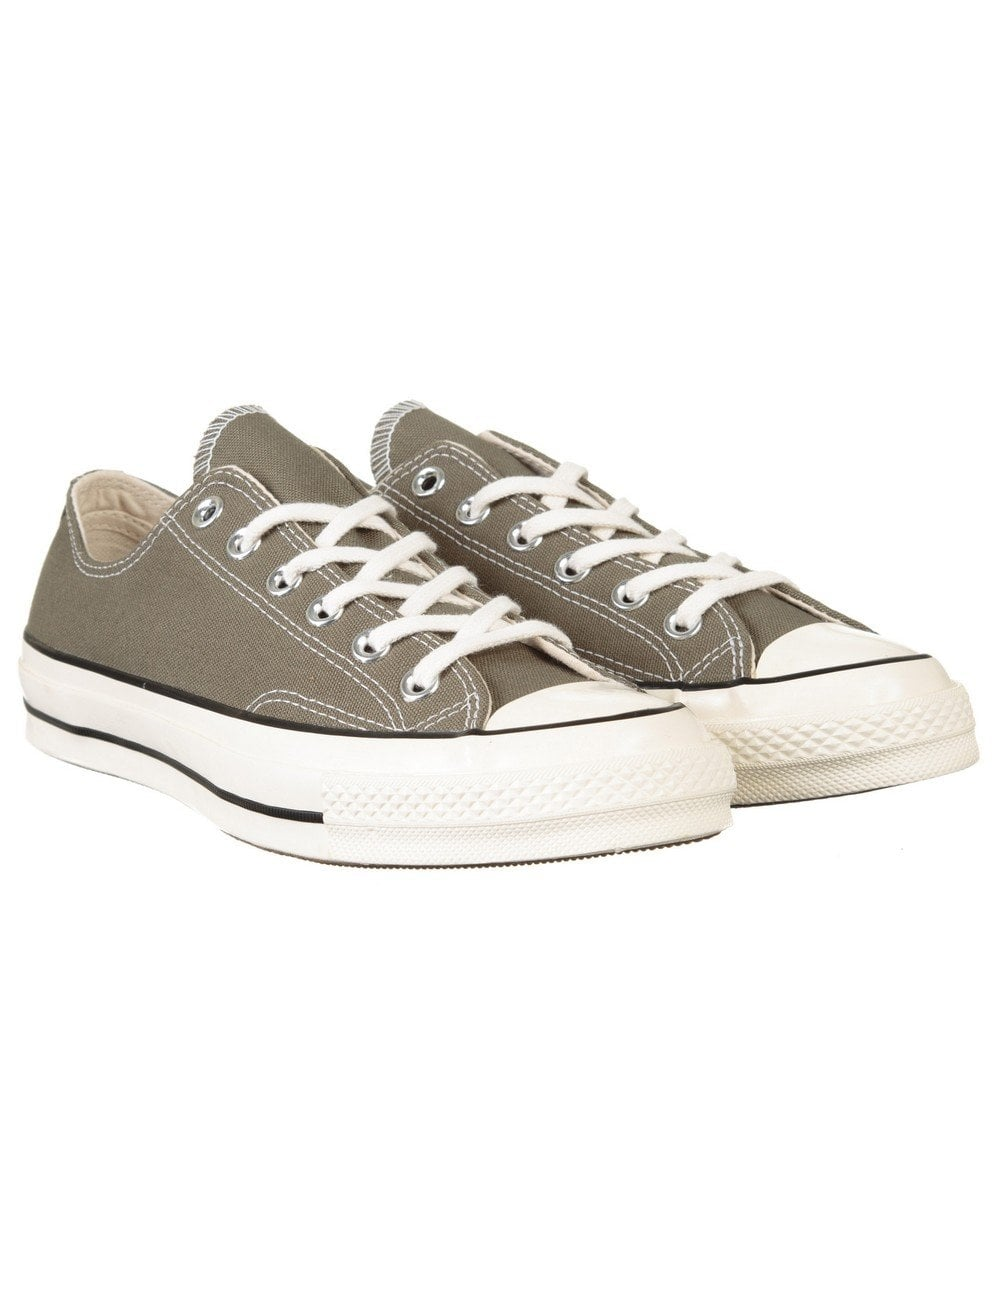 youc.php?p_id=1 star converse